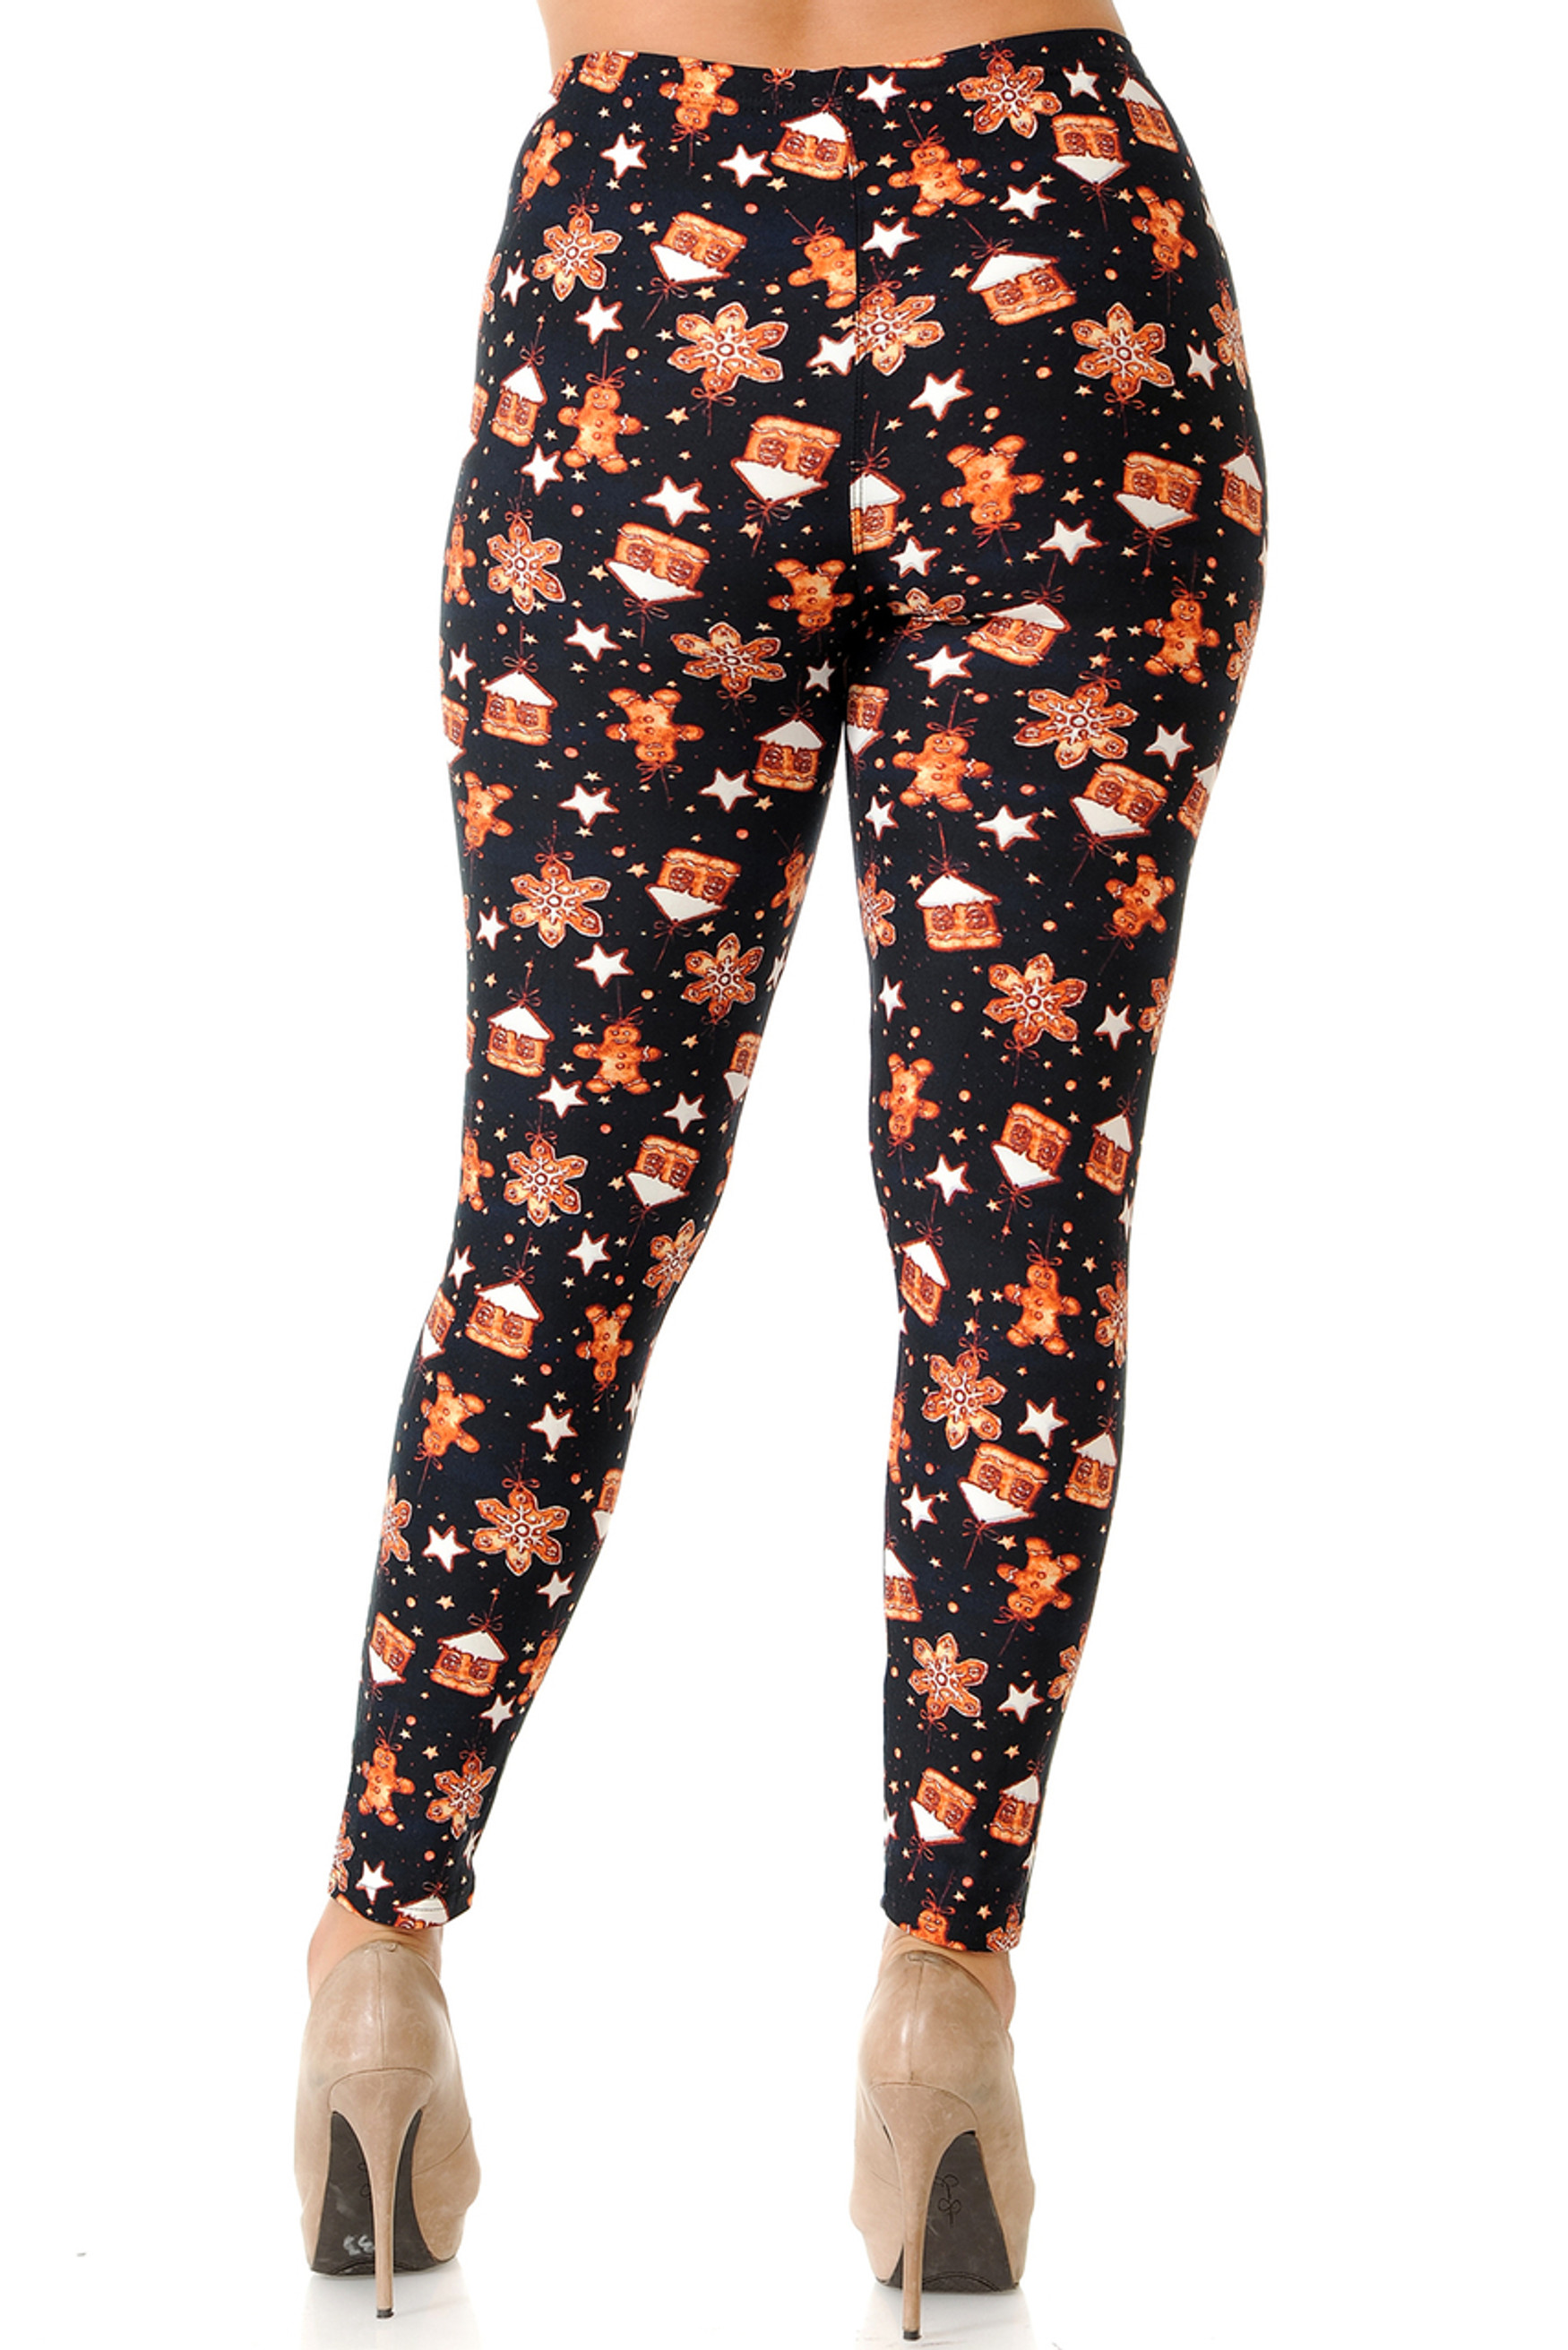 Brushed Holiday Gingerbread Christmas Plus Size Leggings